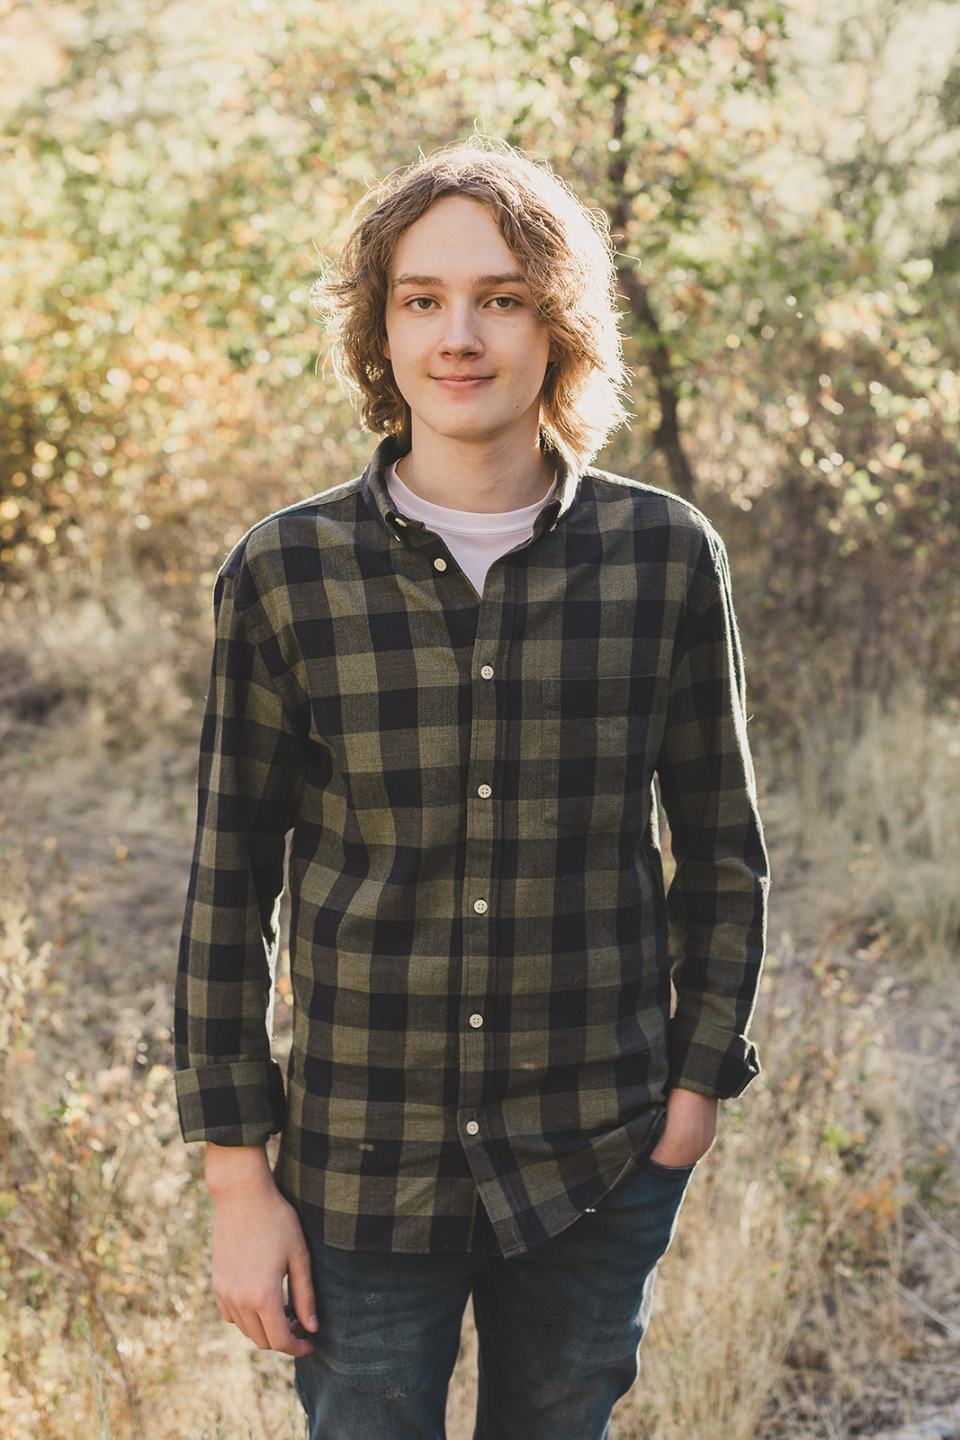 son in green plaid shirt poses during Mt Charleston Family Portraits